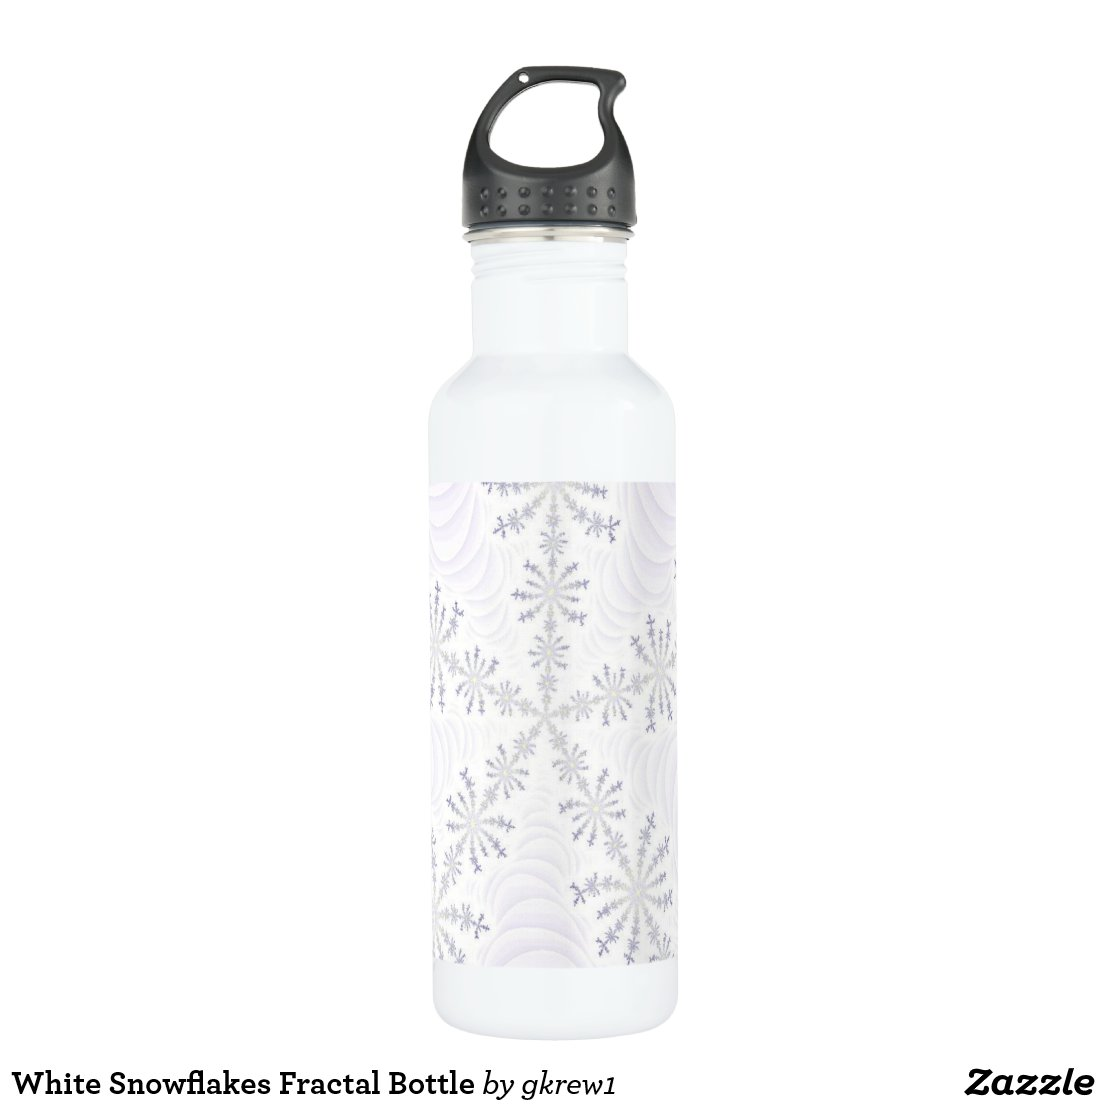 White Snowflakes Fractal Bottle